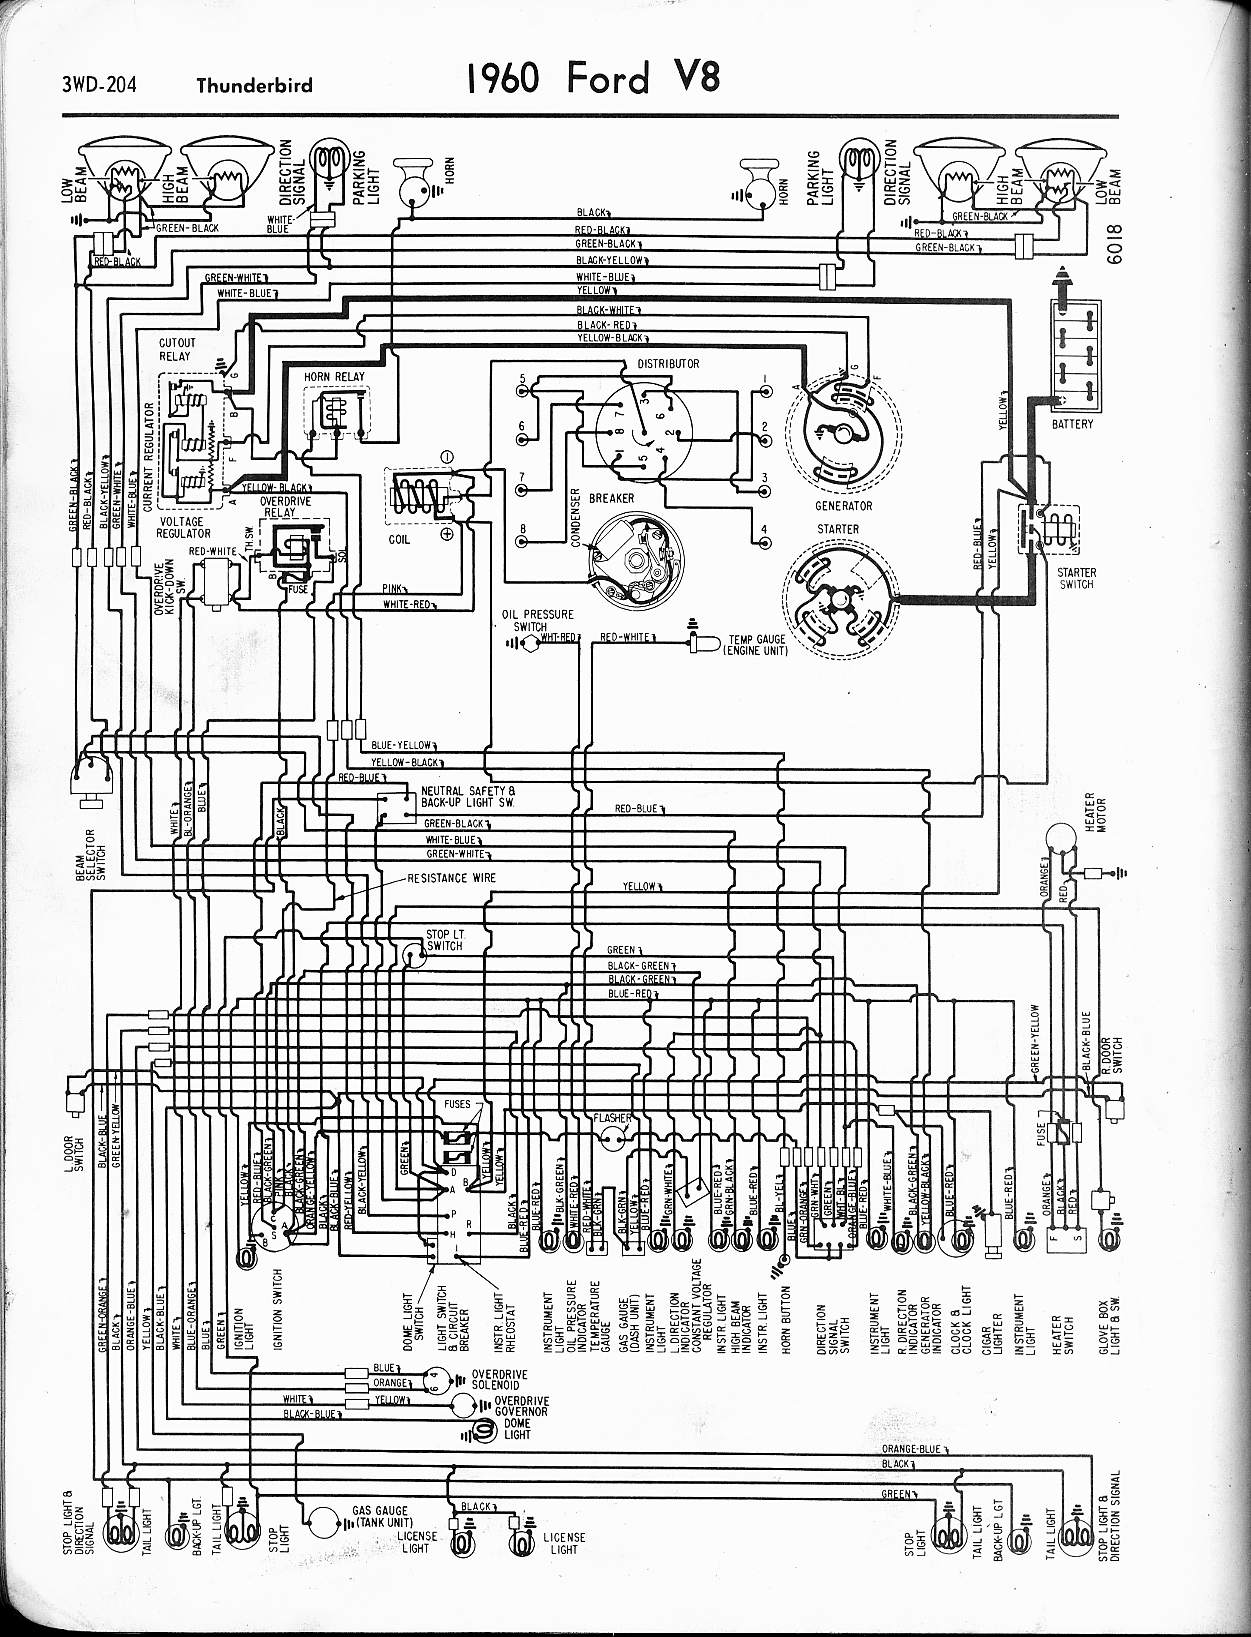 Wiring Diagram 1959 Ford 500 Data For A 1960 Thunderbird Diagrams Vw